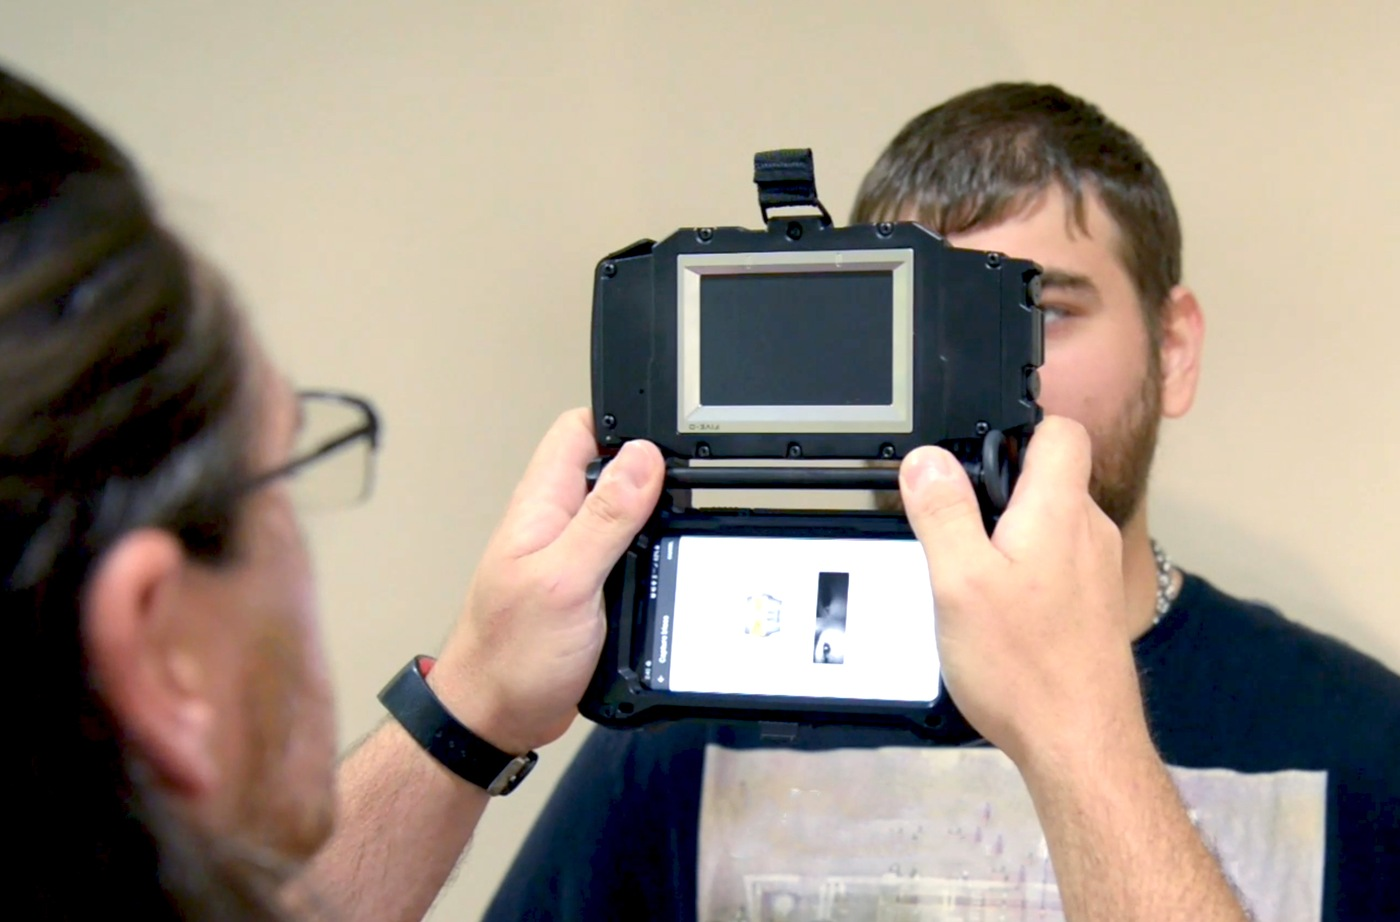 Two people demonstrate how a device is used to capture imagery of irises for the Next Generation Identification (NGI) Iris Service.